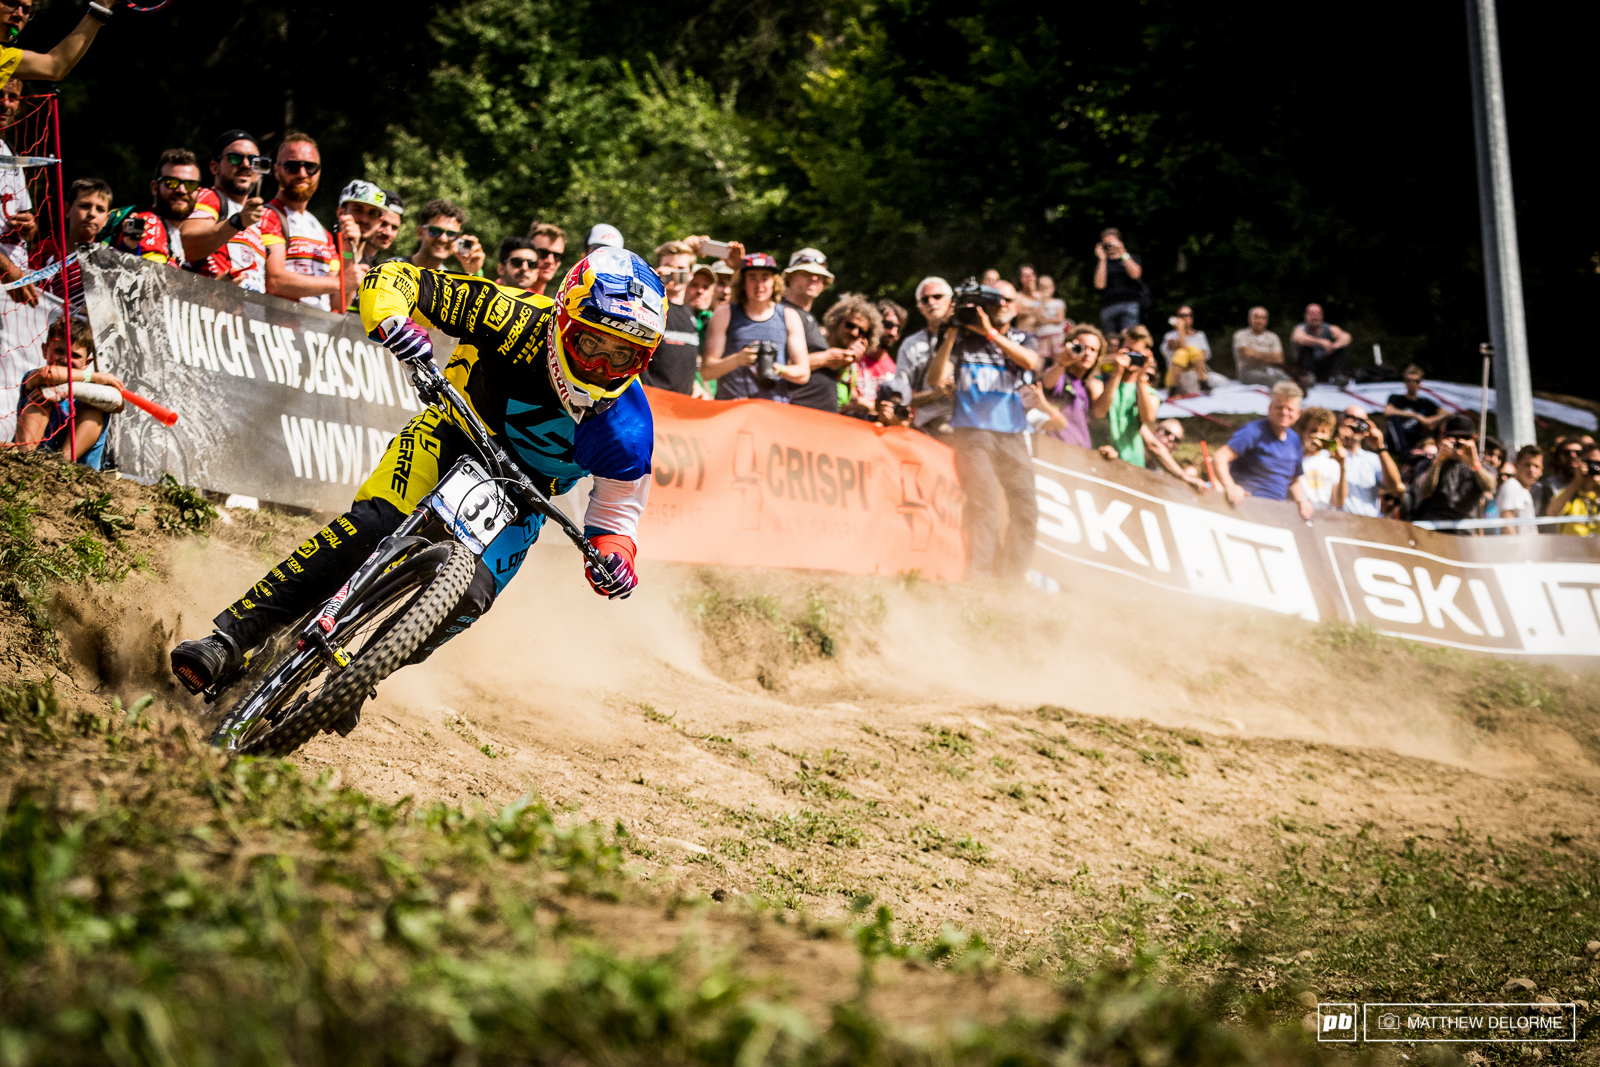 Loic Bruni took second today and second for the overall of the season. Unfortunately that win was still just out of his reach.